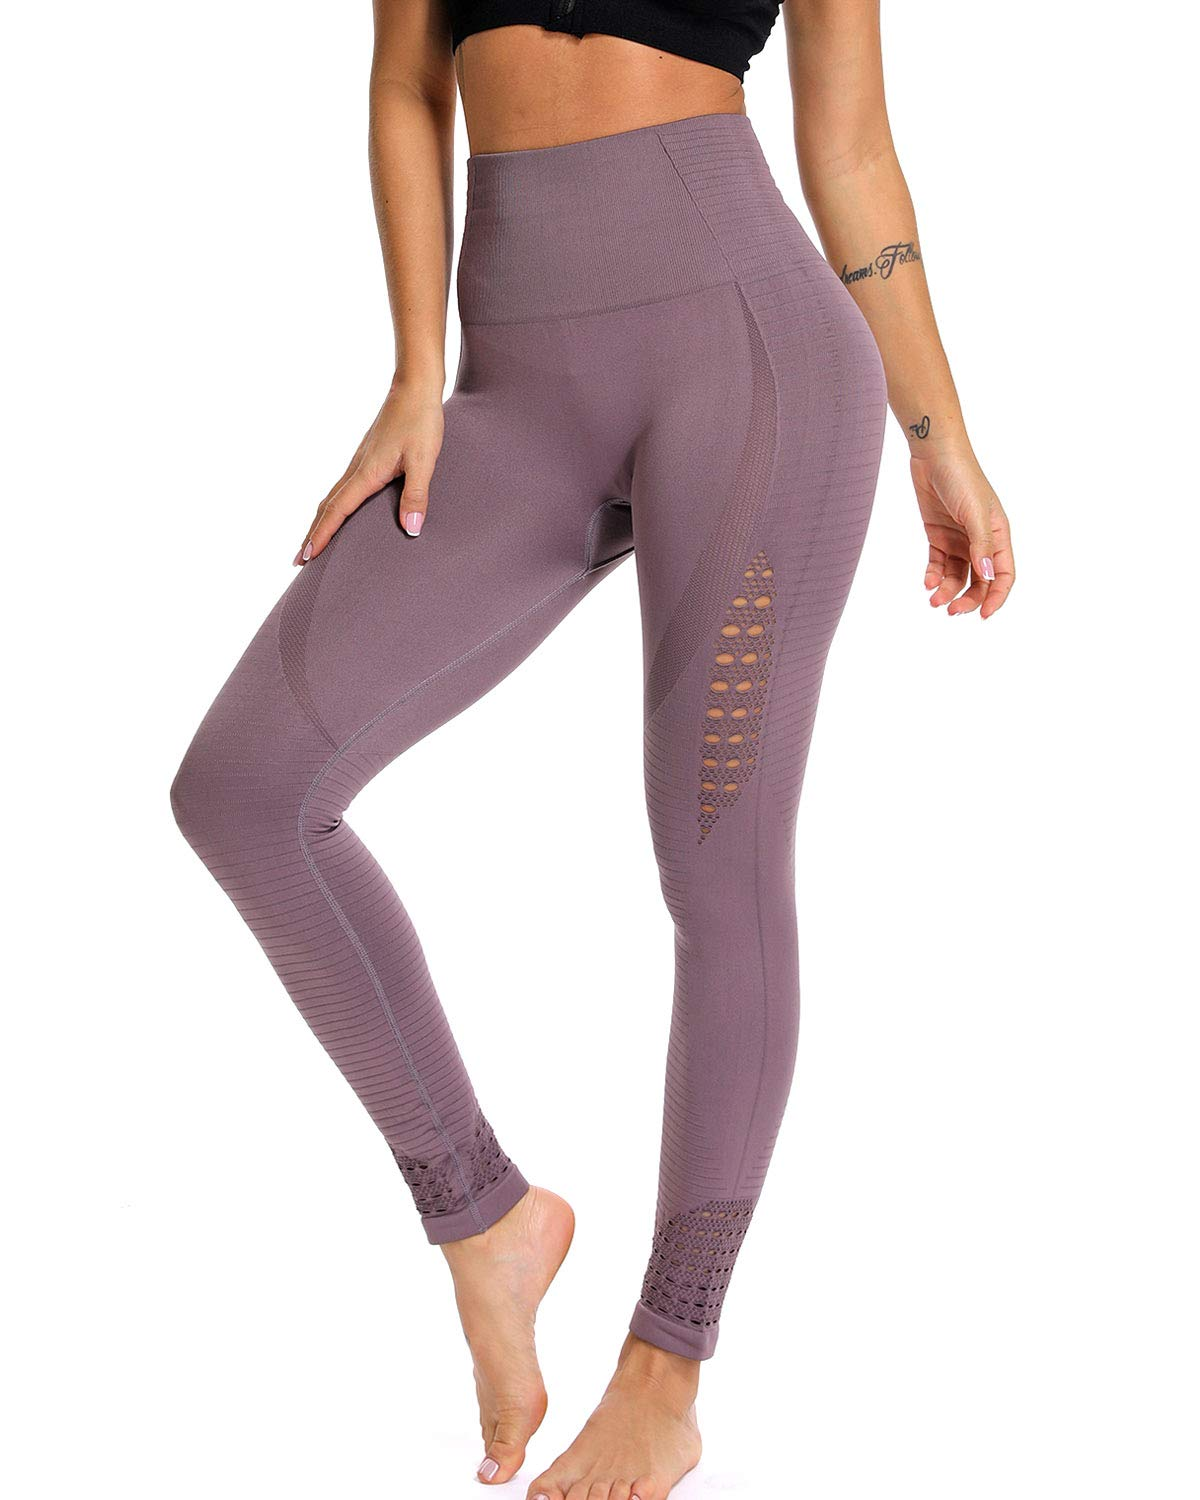 FITTOO Women's High Waist Seamless Leggings Ankle Yoga Pants Tummy Control Running Workout Tights